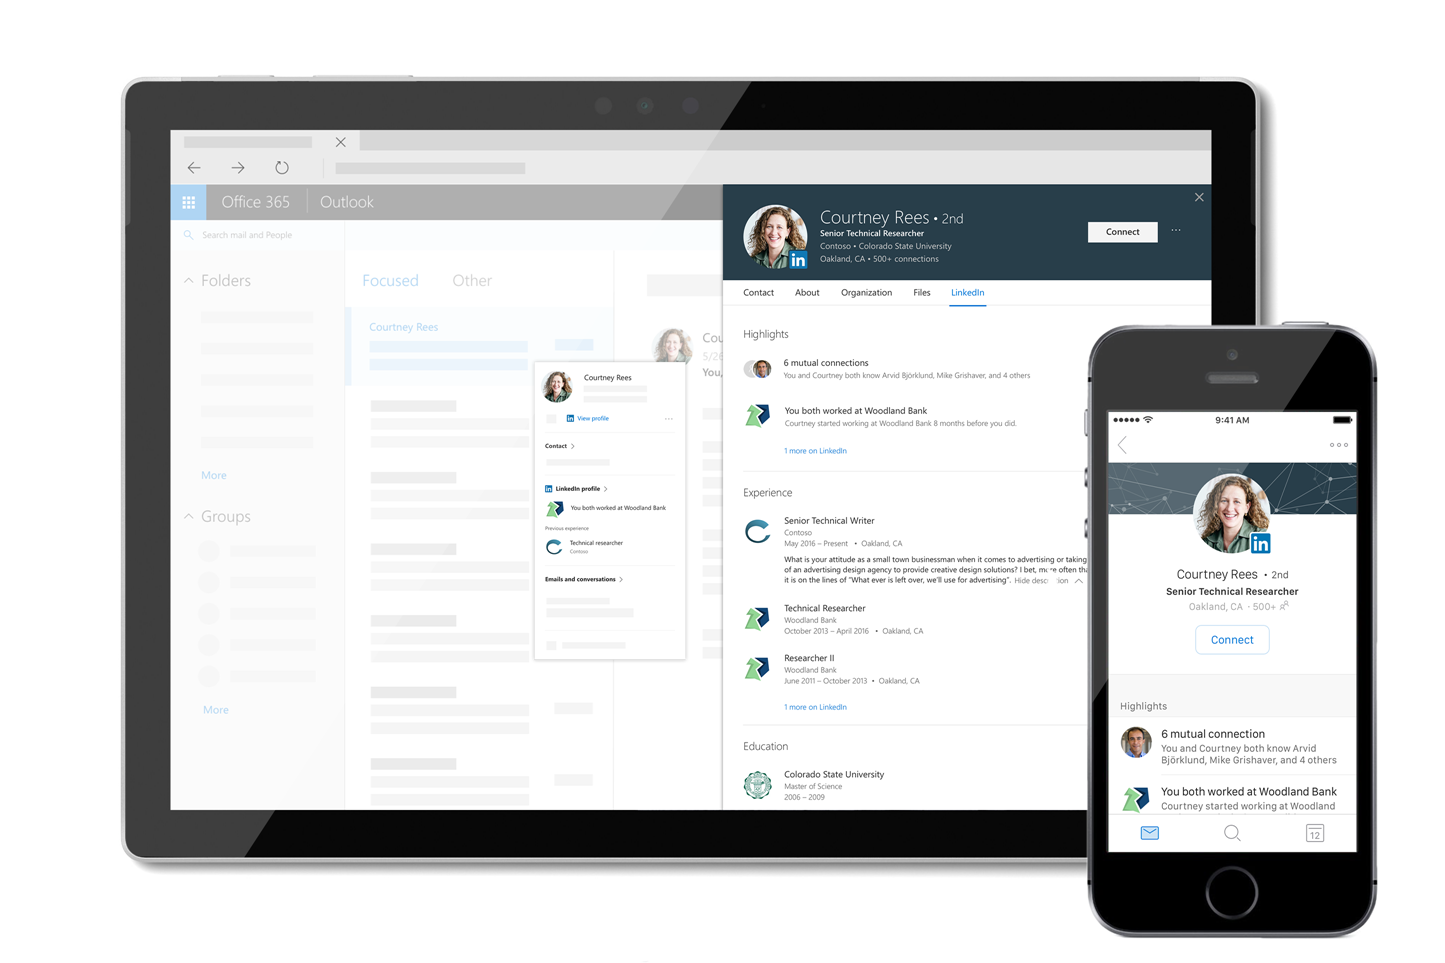 LinkedIn in your Microsoft apps